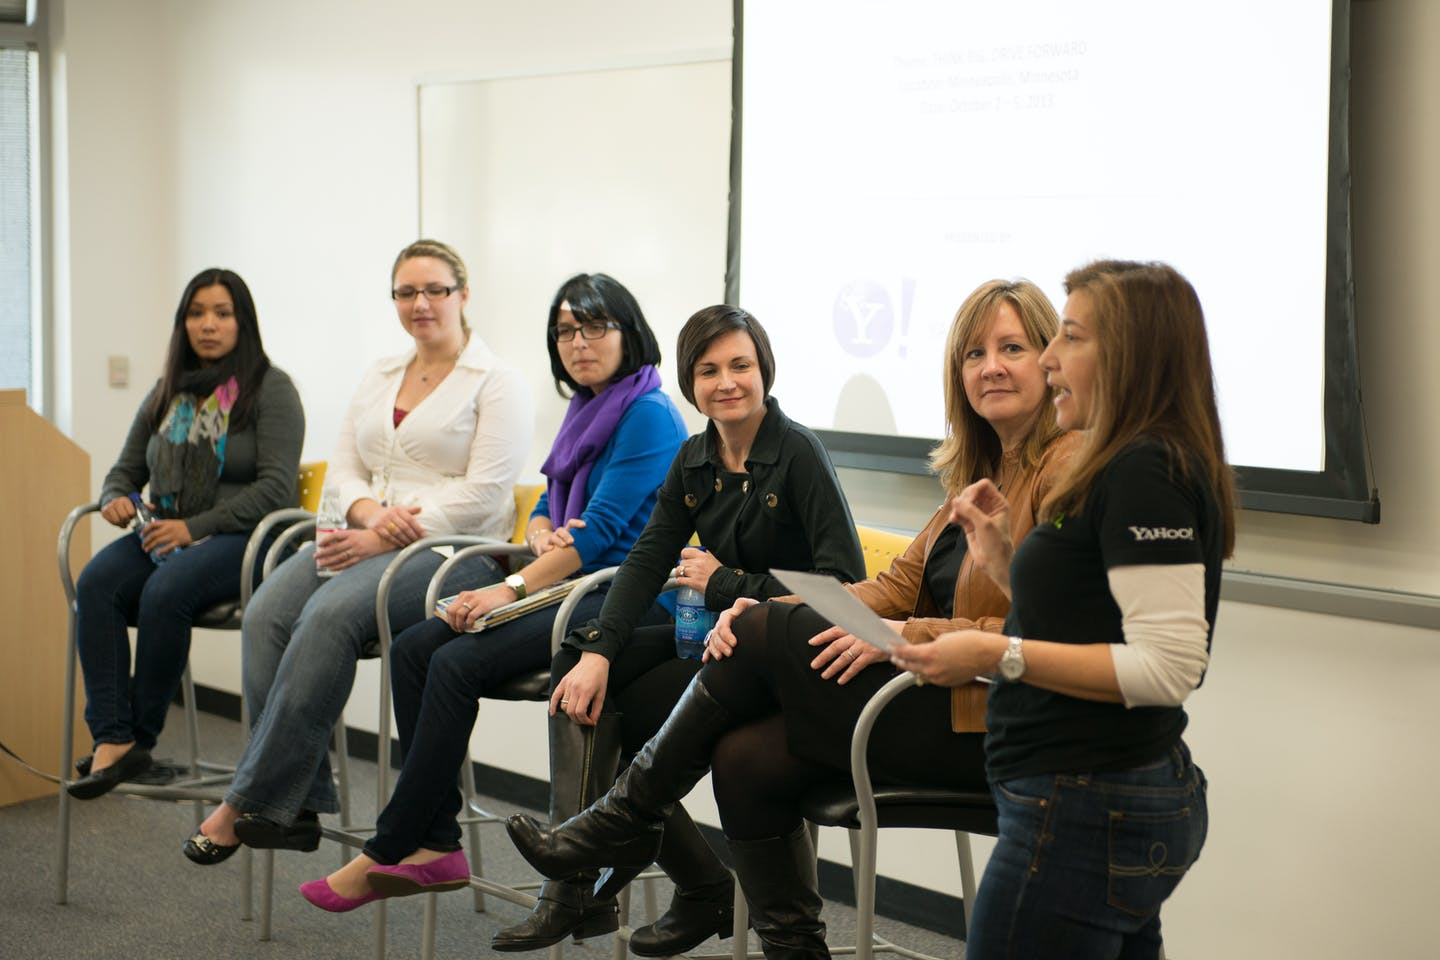 Women on a panel on women in tech